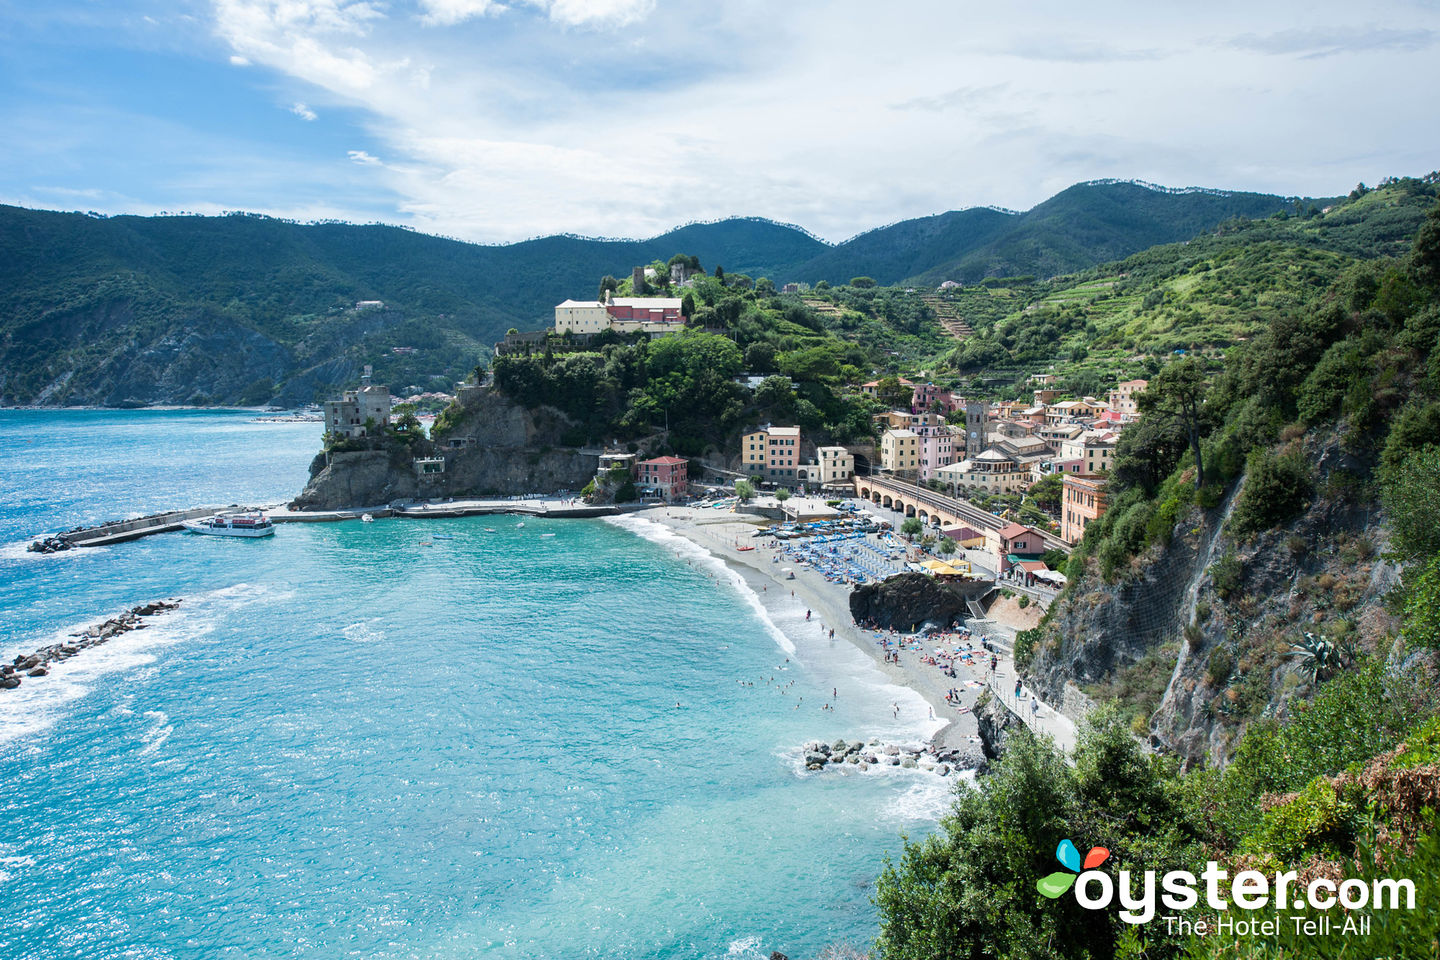 Top 5 Tips for Hiking in Cinque Terre